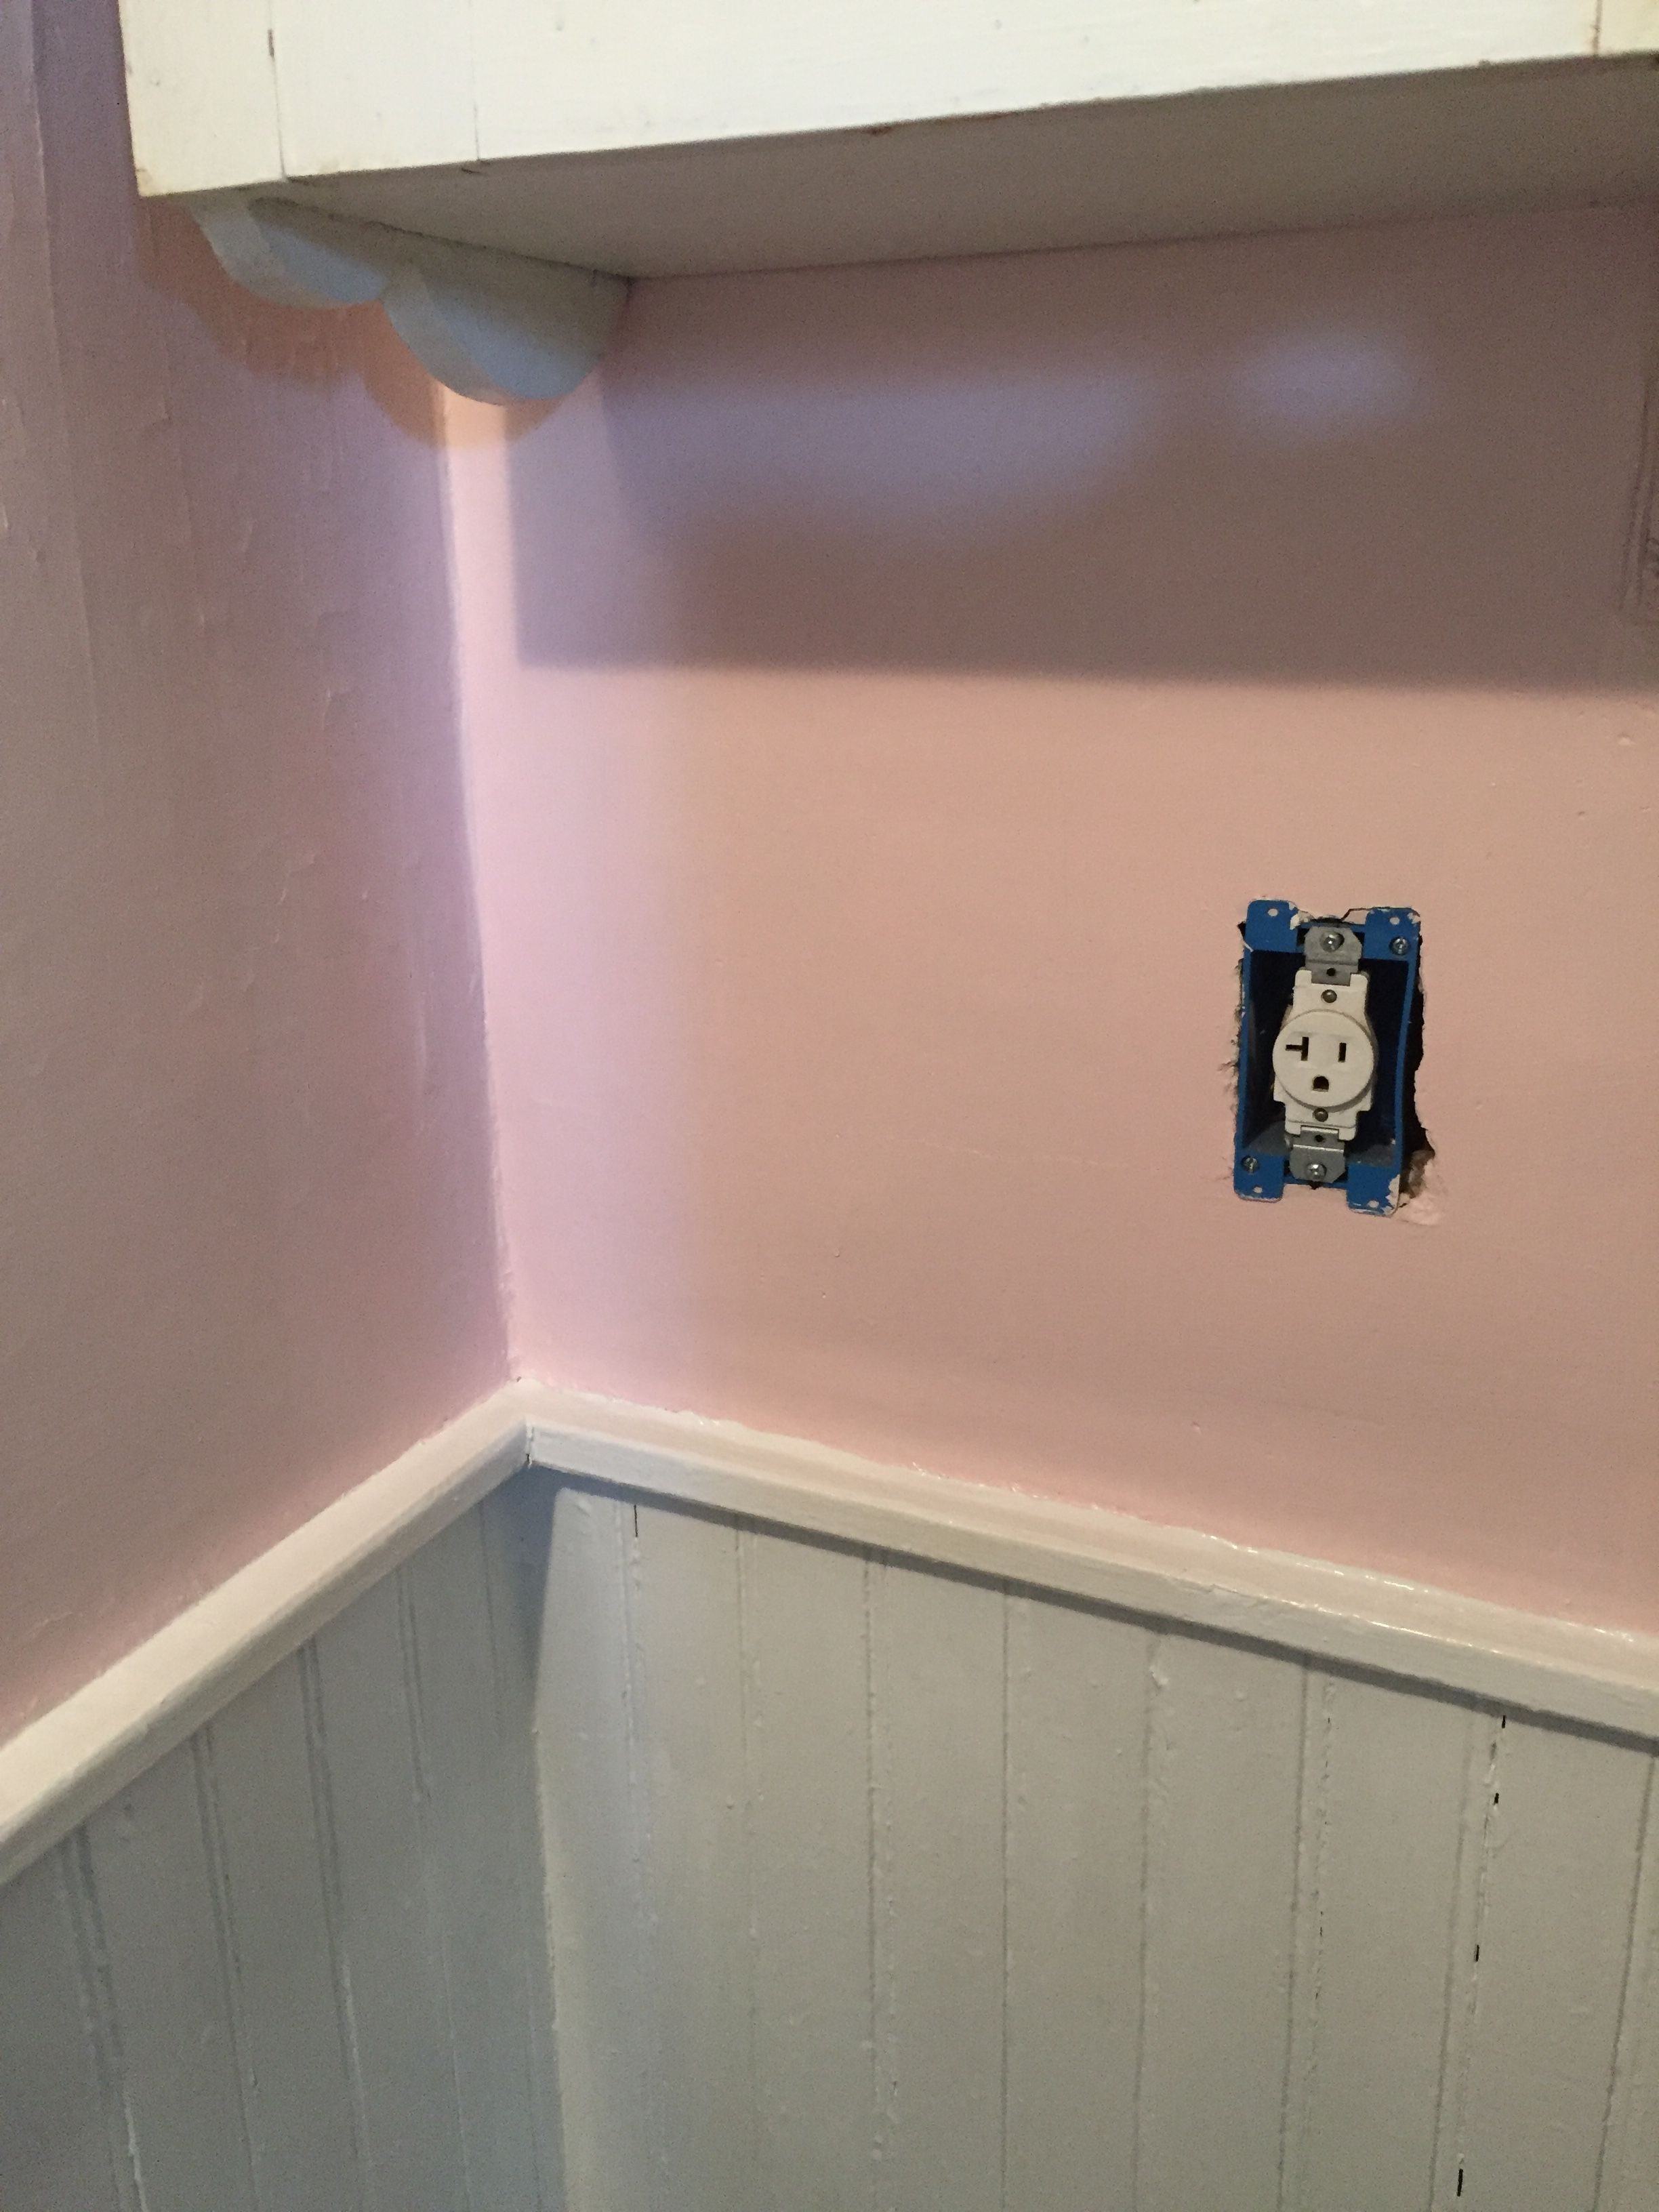 Sherwin Williams Super Paint Semi Gloss in Charming Pink